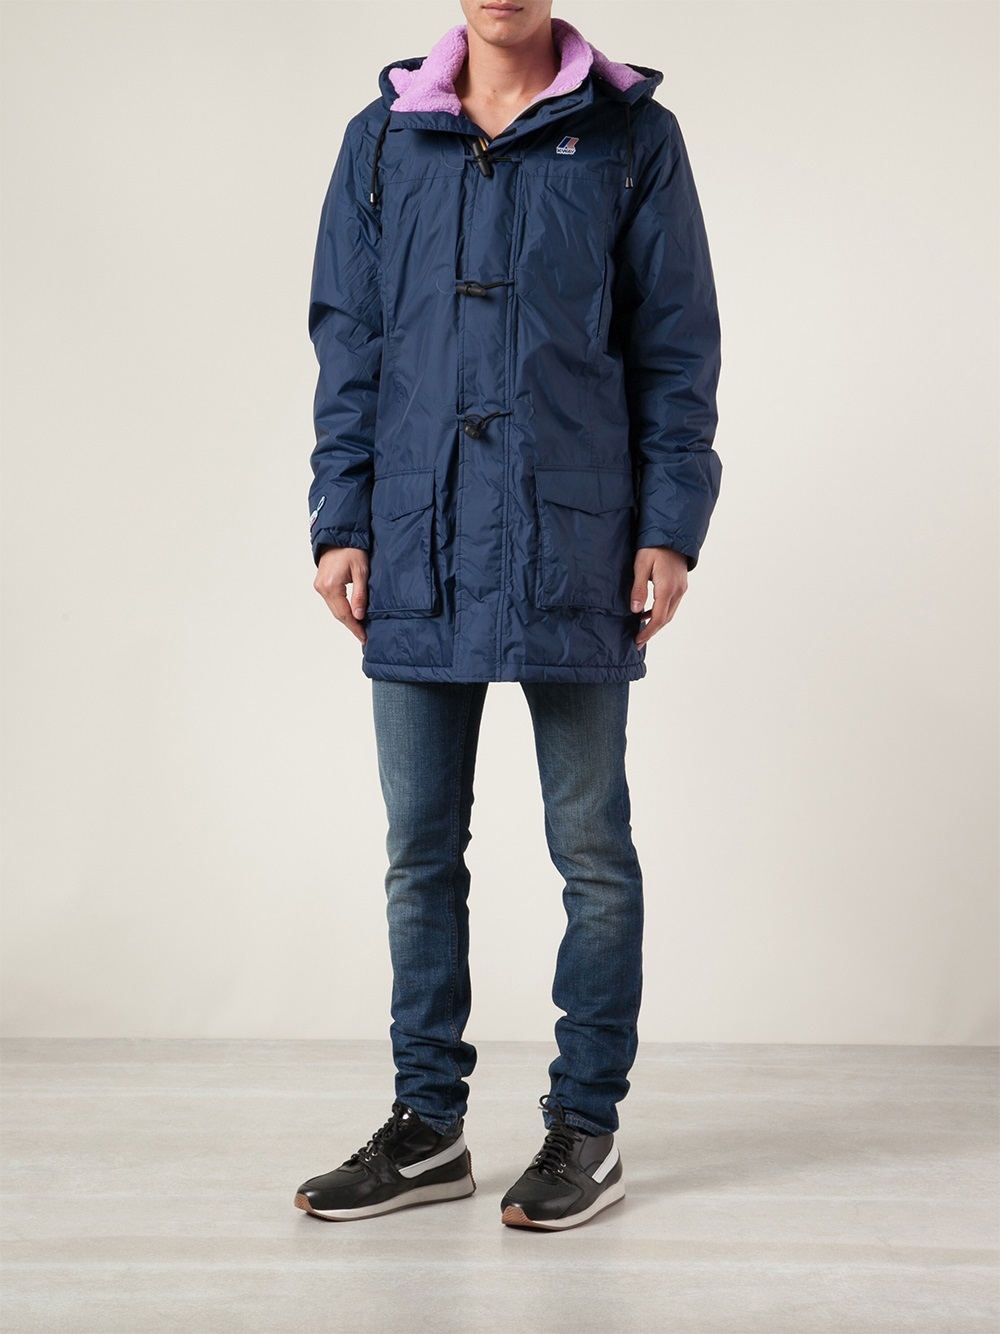 Wonderful Mens Jacket | Cozy Limoland